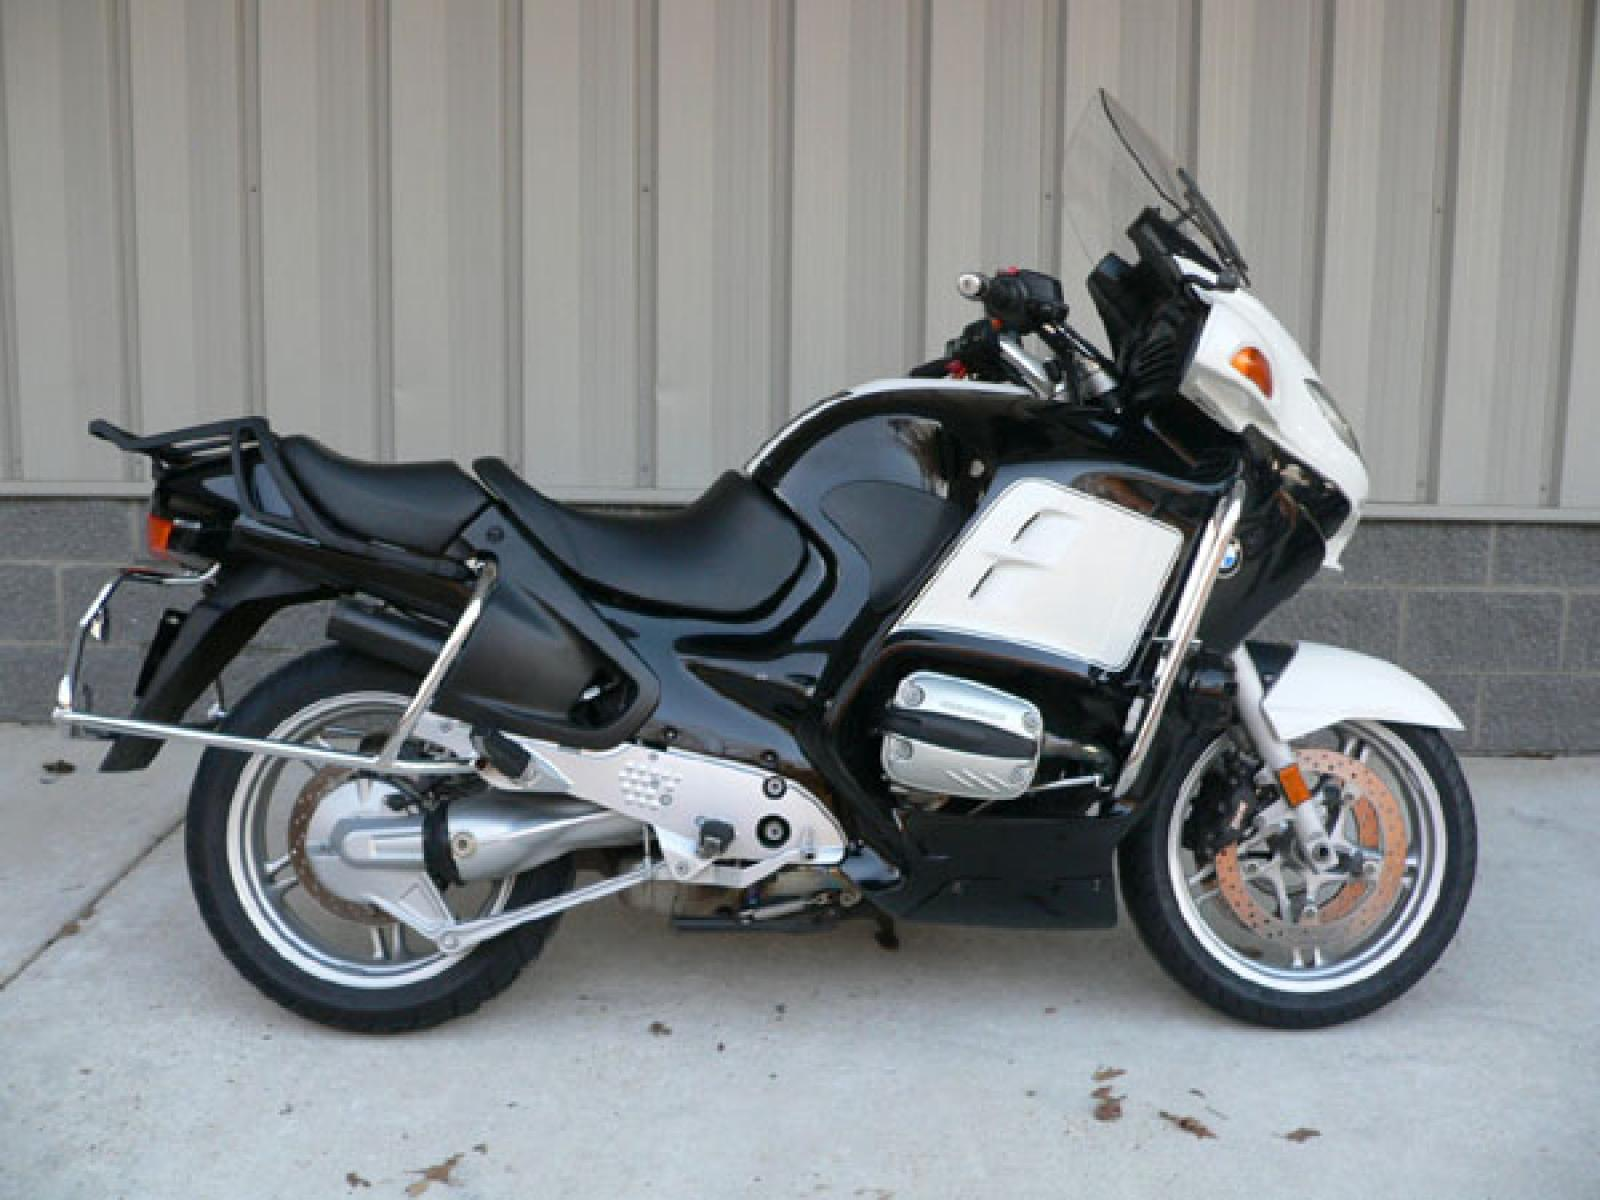 hight resolution of review jpg 1600x1200 2002 bmw r1150rt review